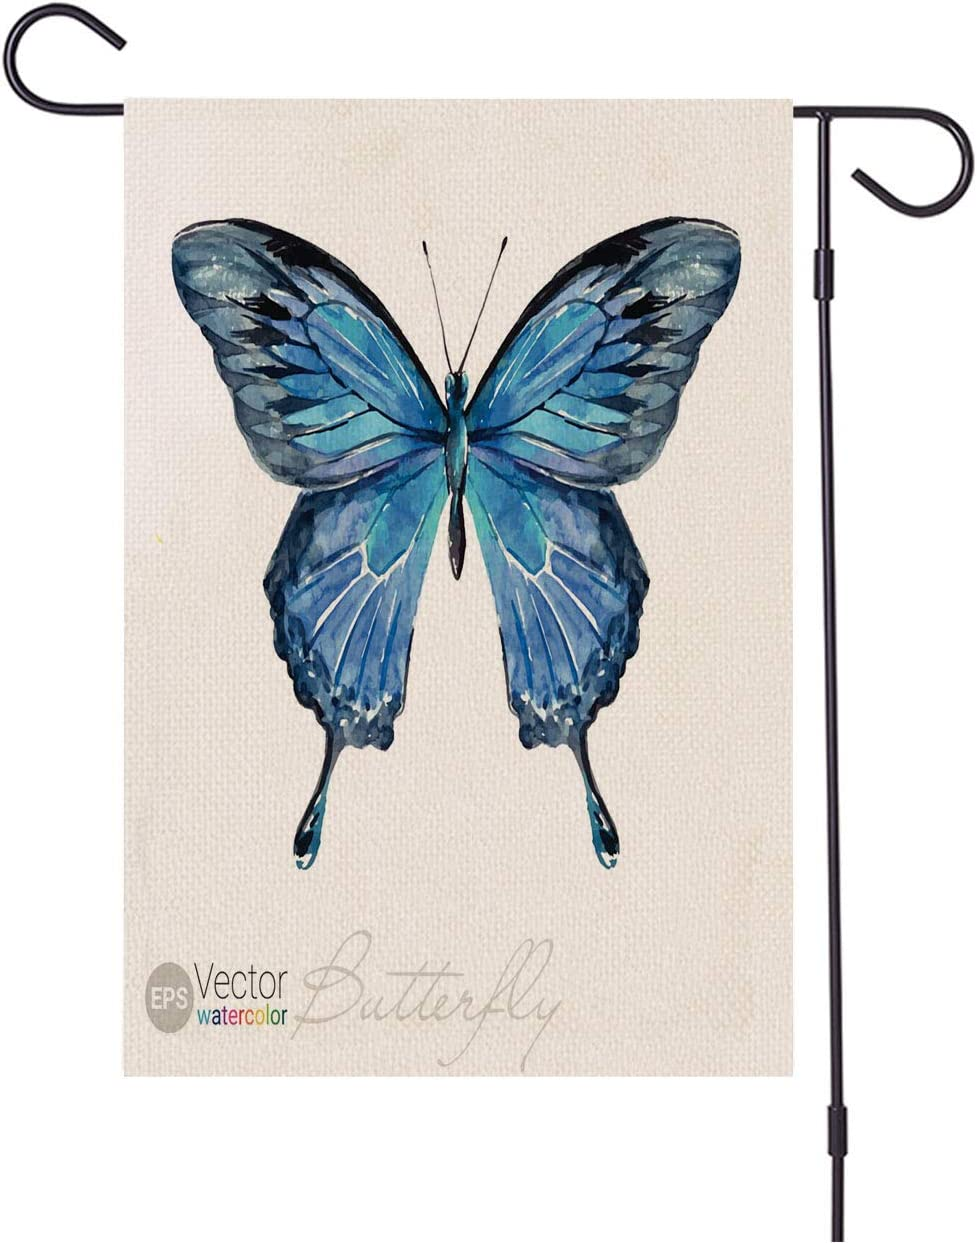 Amazon Com Watercolor Family Garden Banner Vector Watercolor Butterfly The Garden Flags For Outdoor Decoration Of Houses And Gardens Make Life Better All Weather Anti Fading Material Sided Polyester 28x40inch Garden Outdoor